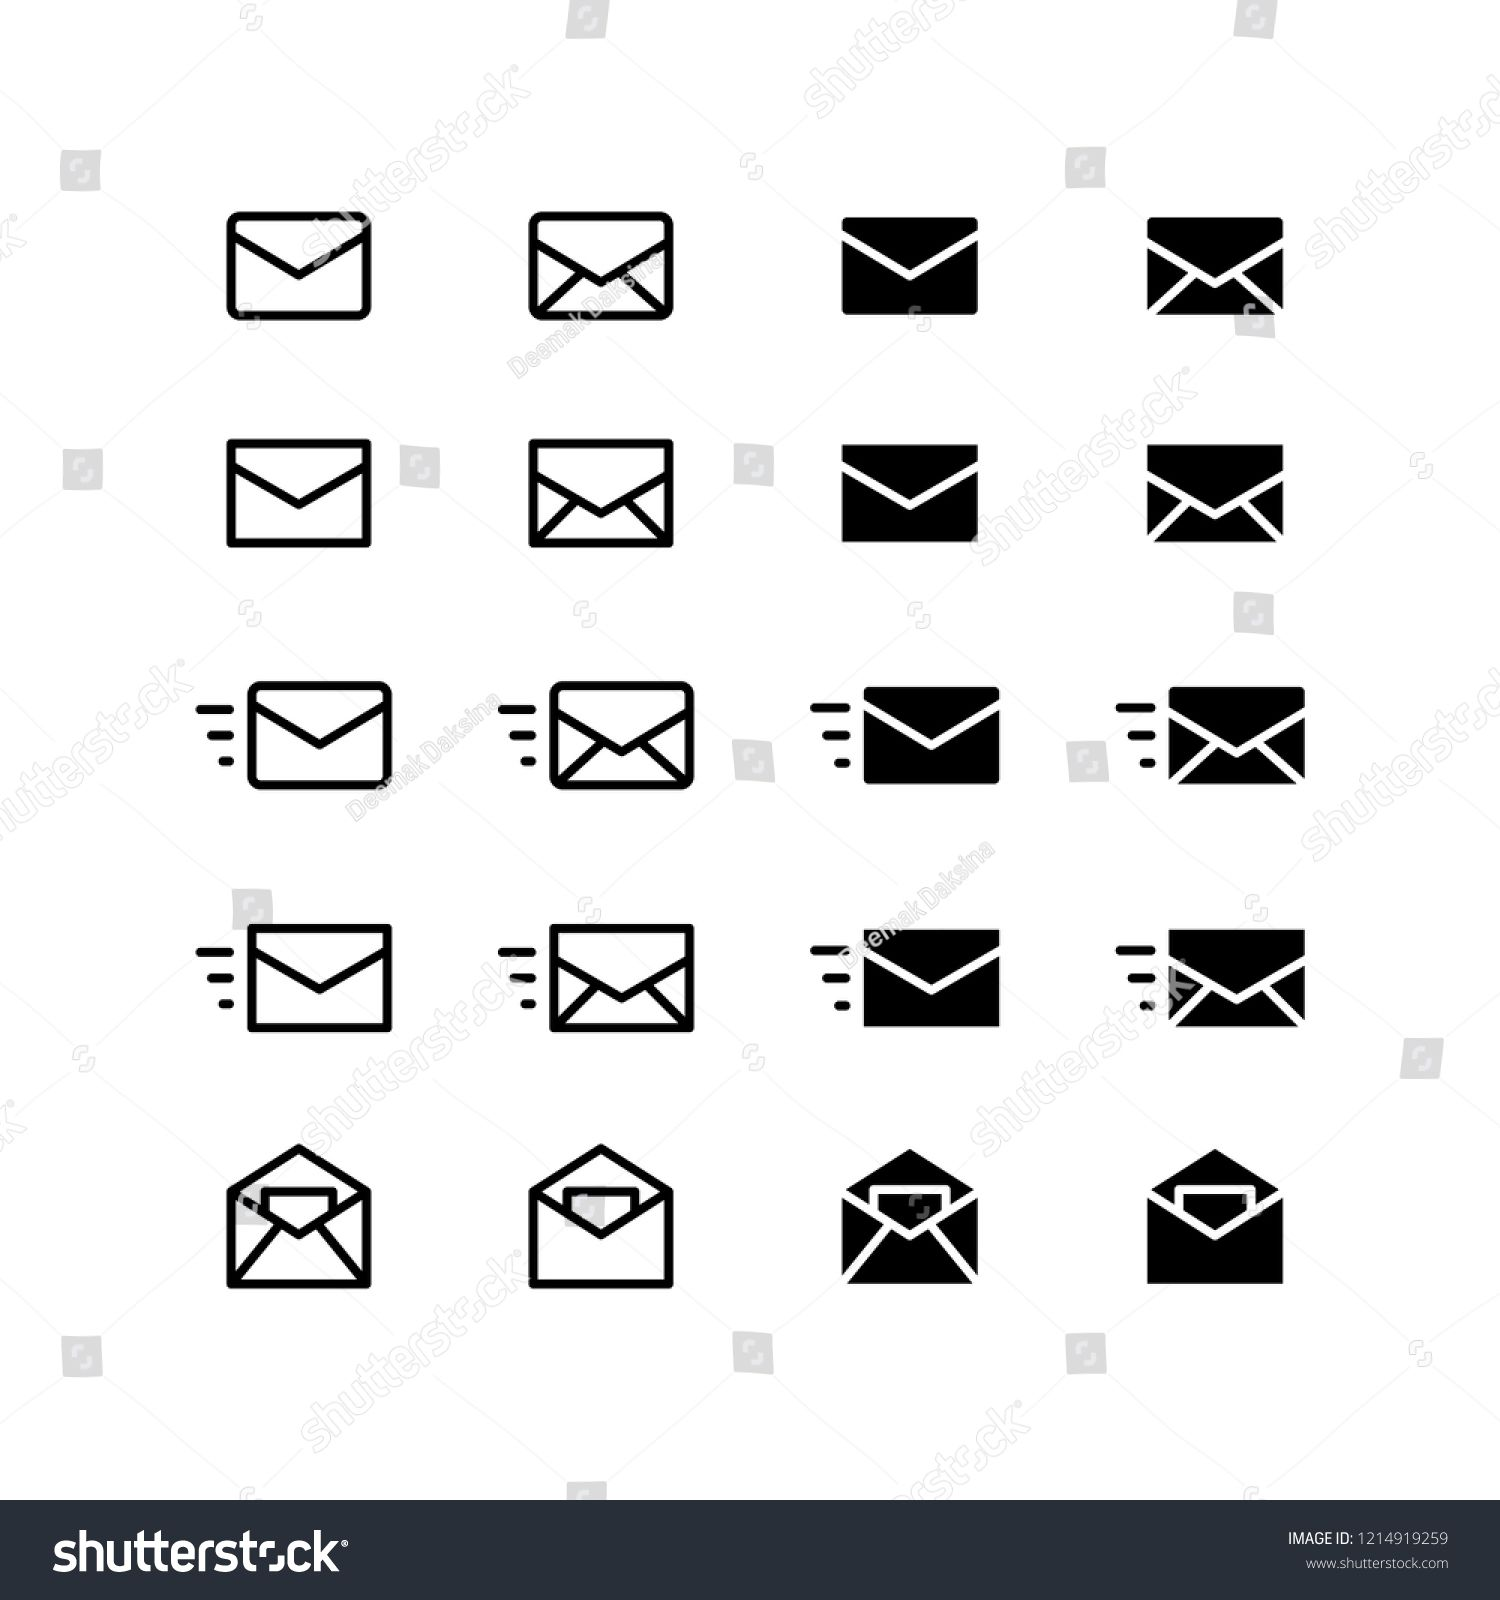 Mail Icon Design. mail, envelope, letter, email